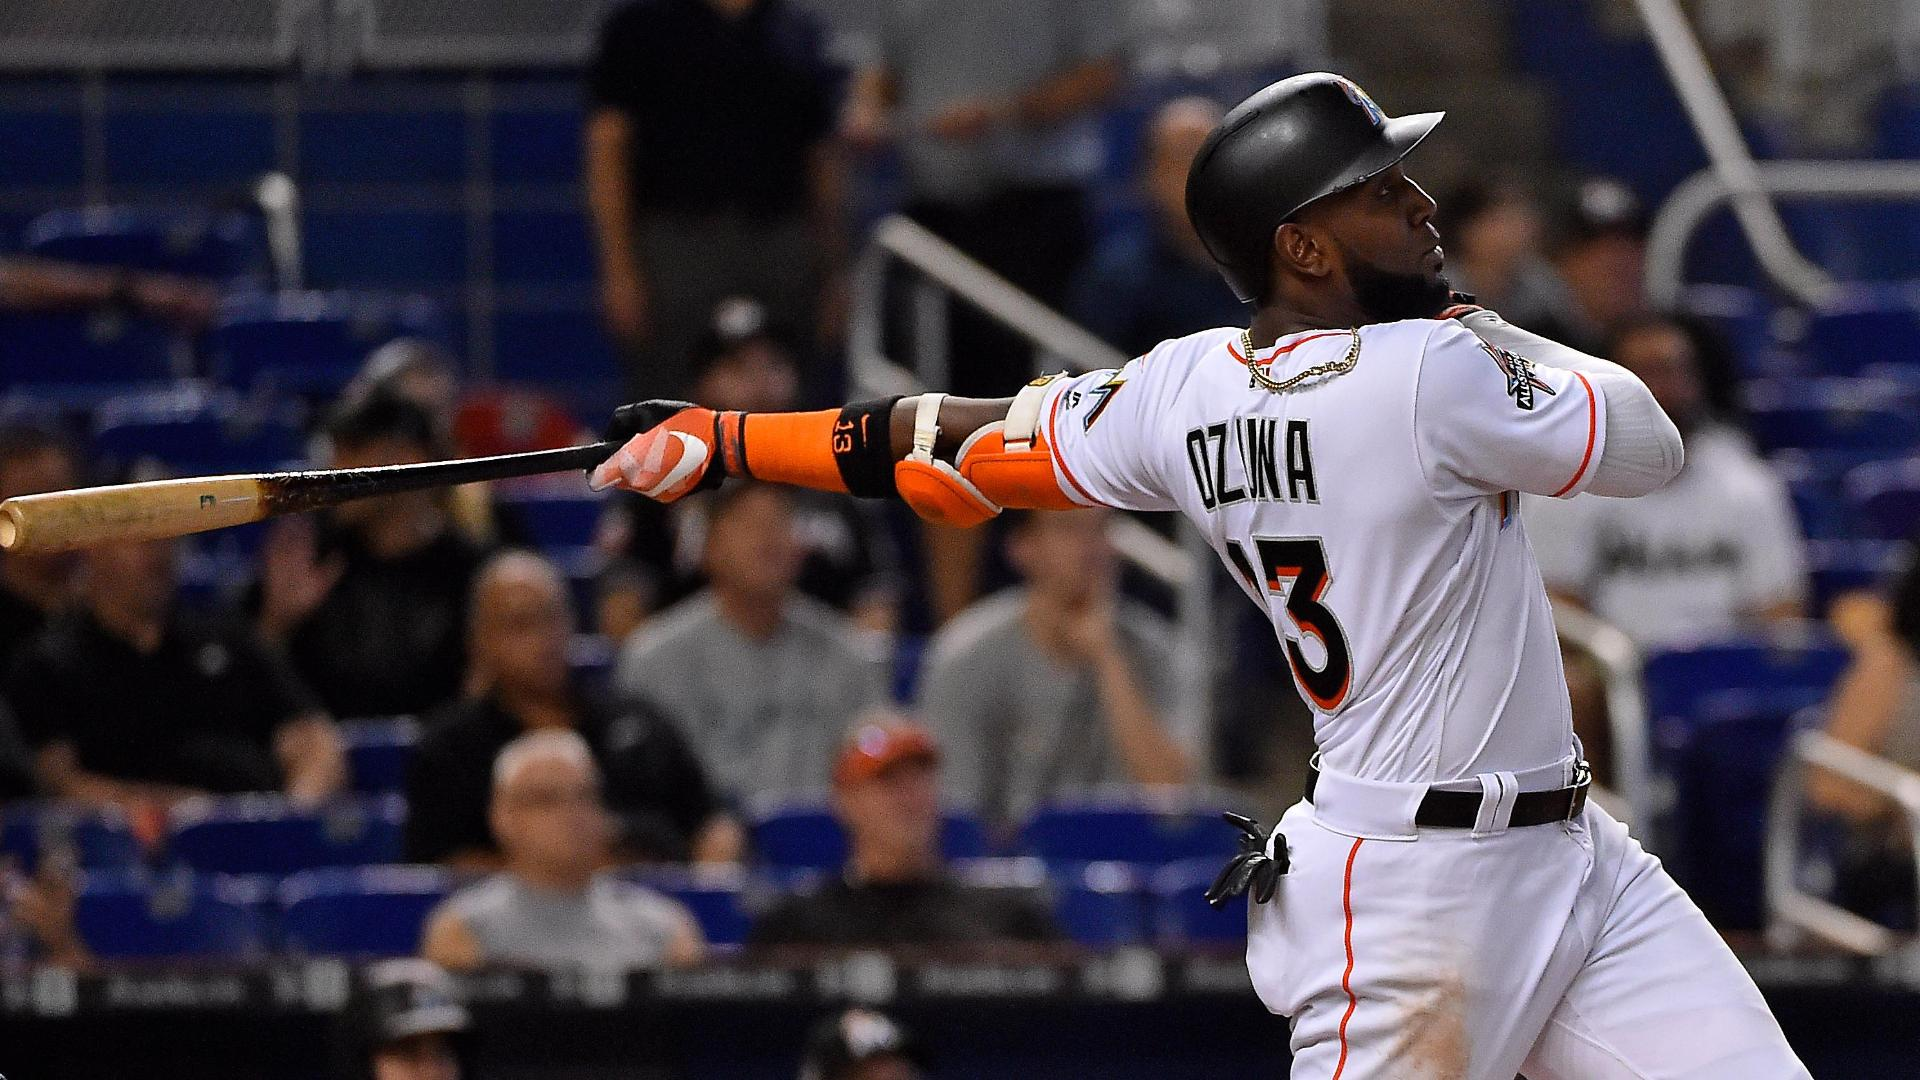 http://a.espncdn.com/media/motion/2017/0614/dm_170614_mlb_marlins_ozuna_homer1229/dm_170614_mlb_marlins_ozuna_homer1229.jpg